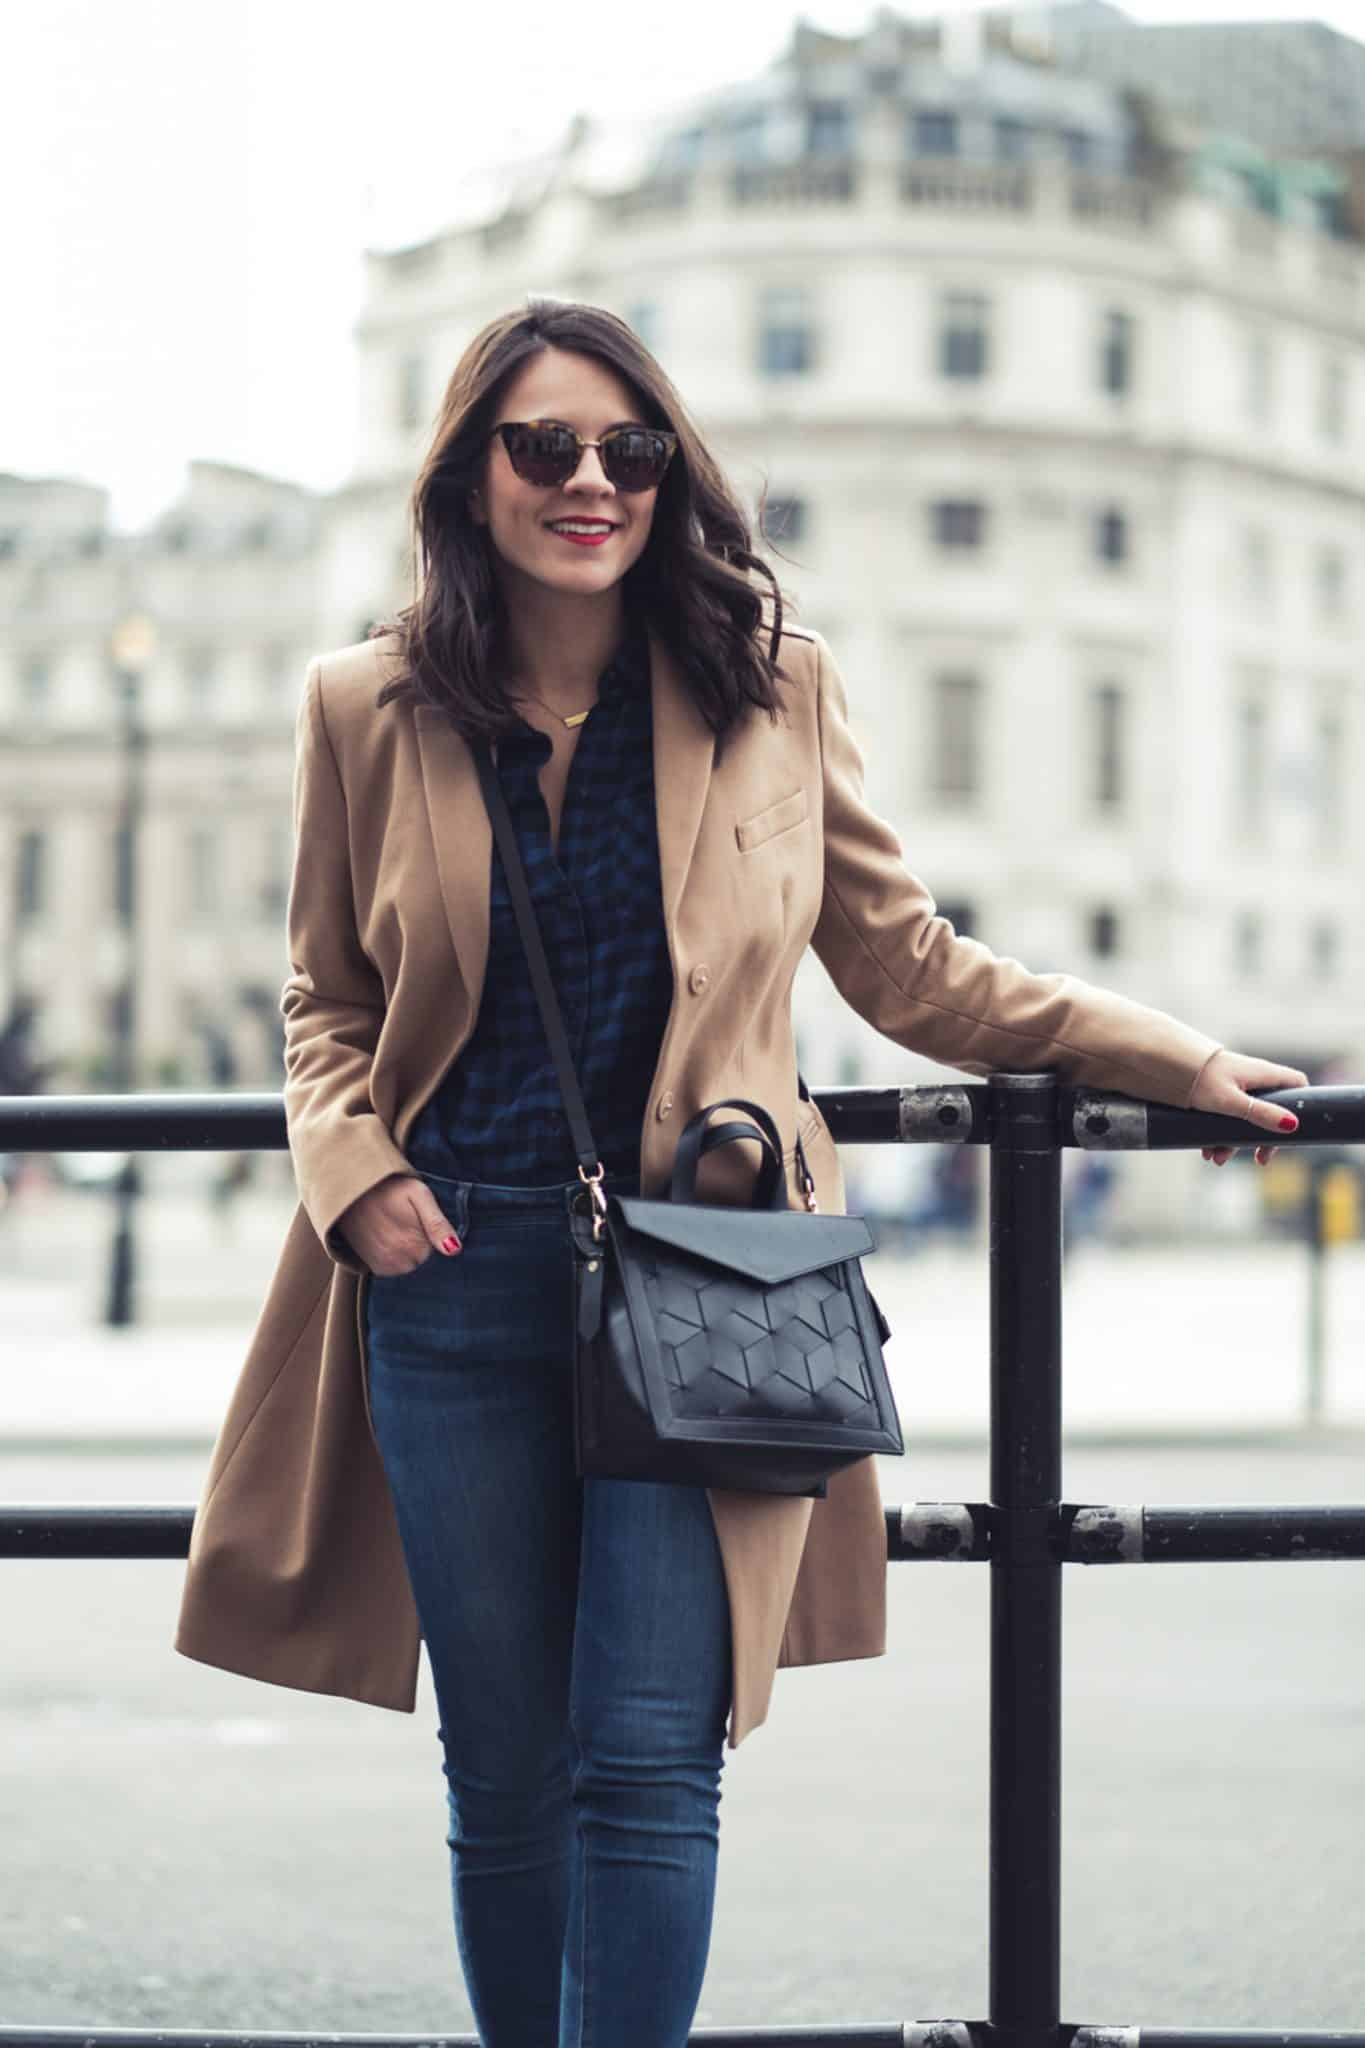 trench coat, patent loafers, casual london street style, trench coat - My Style Vita @mystylevita